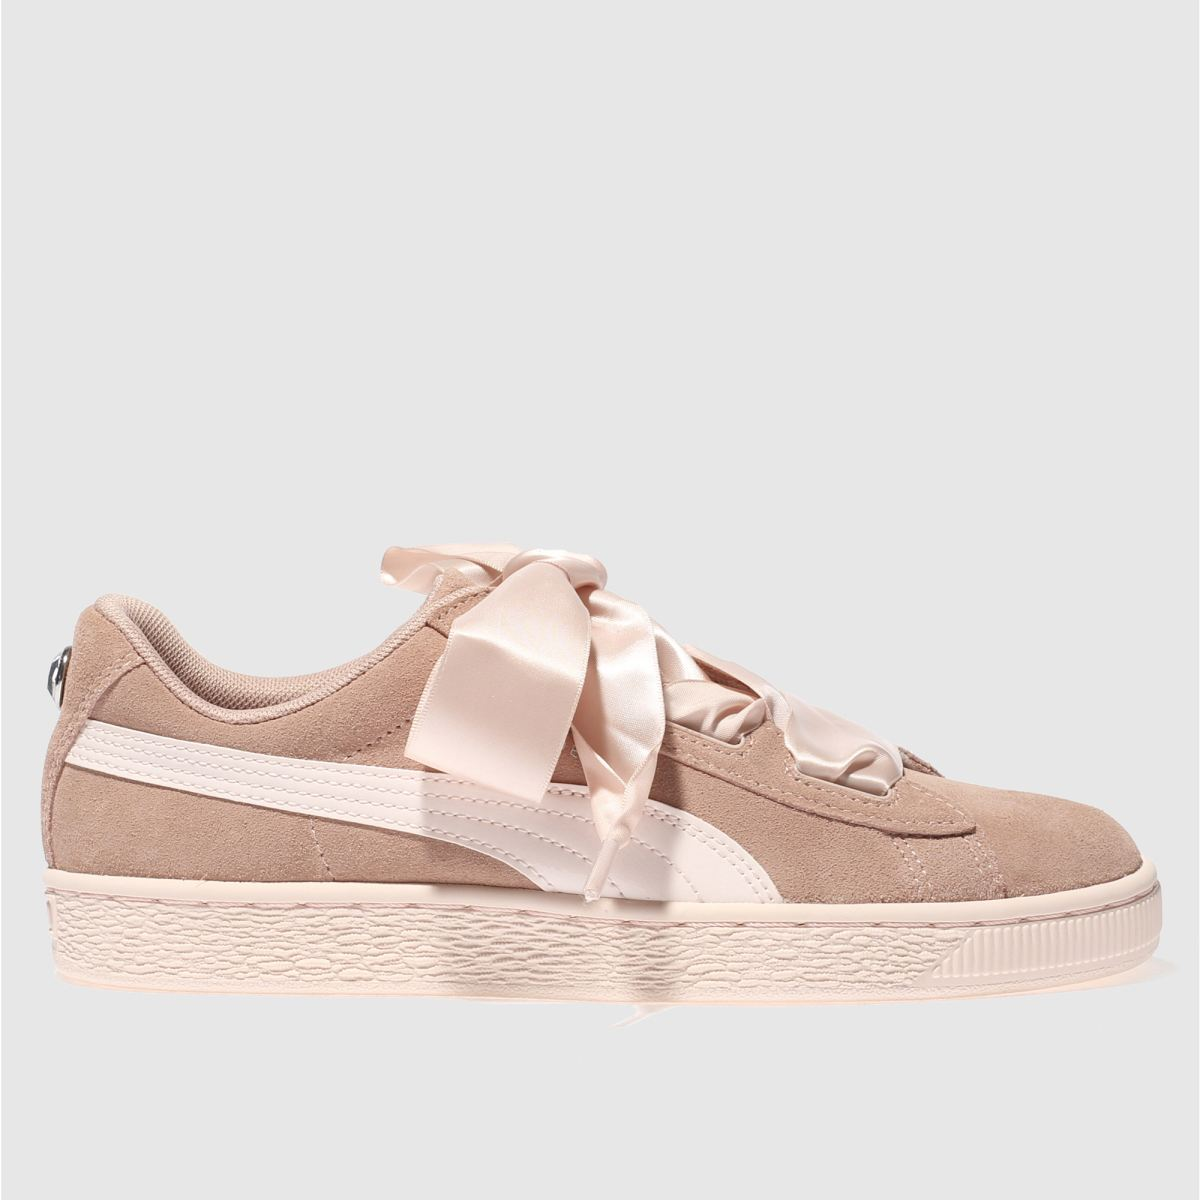 Puma Pink Suede Heart Jewel Girls Youth Trainers